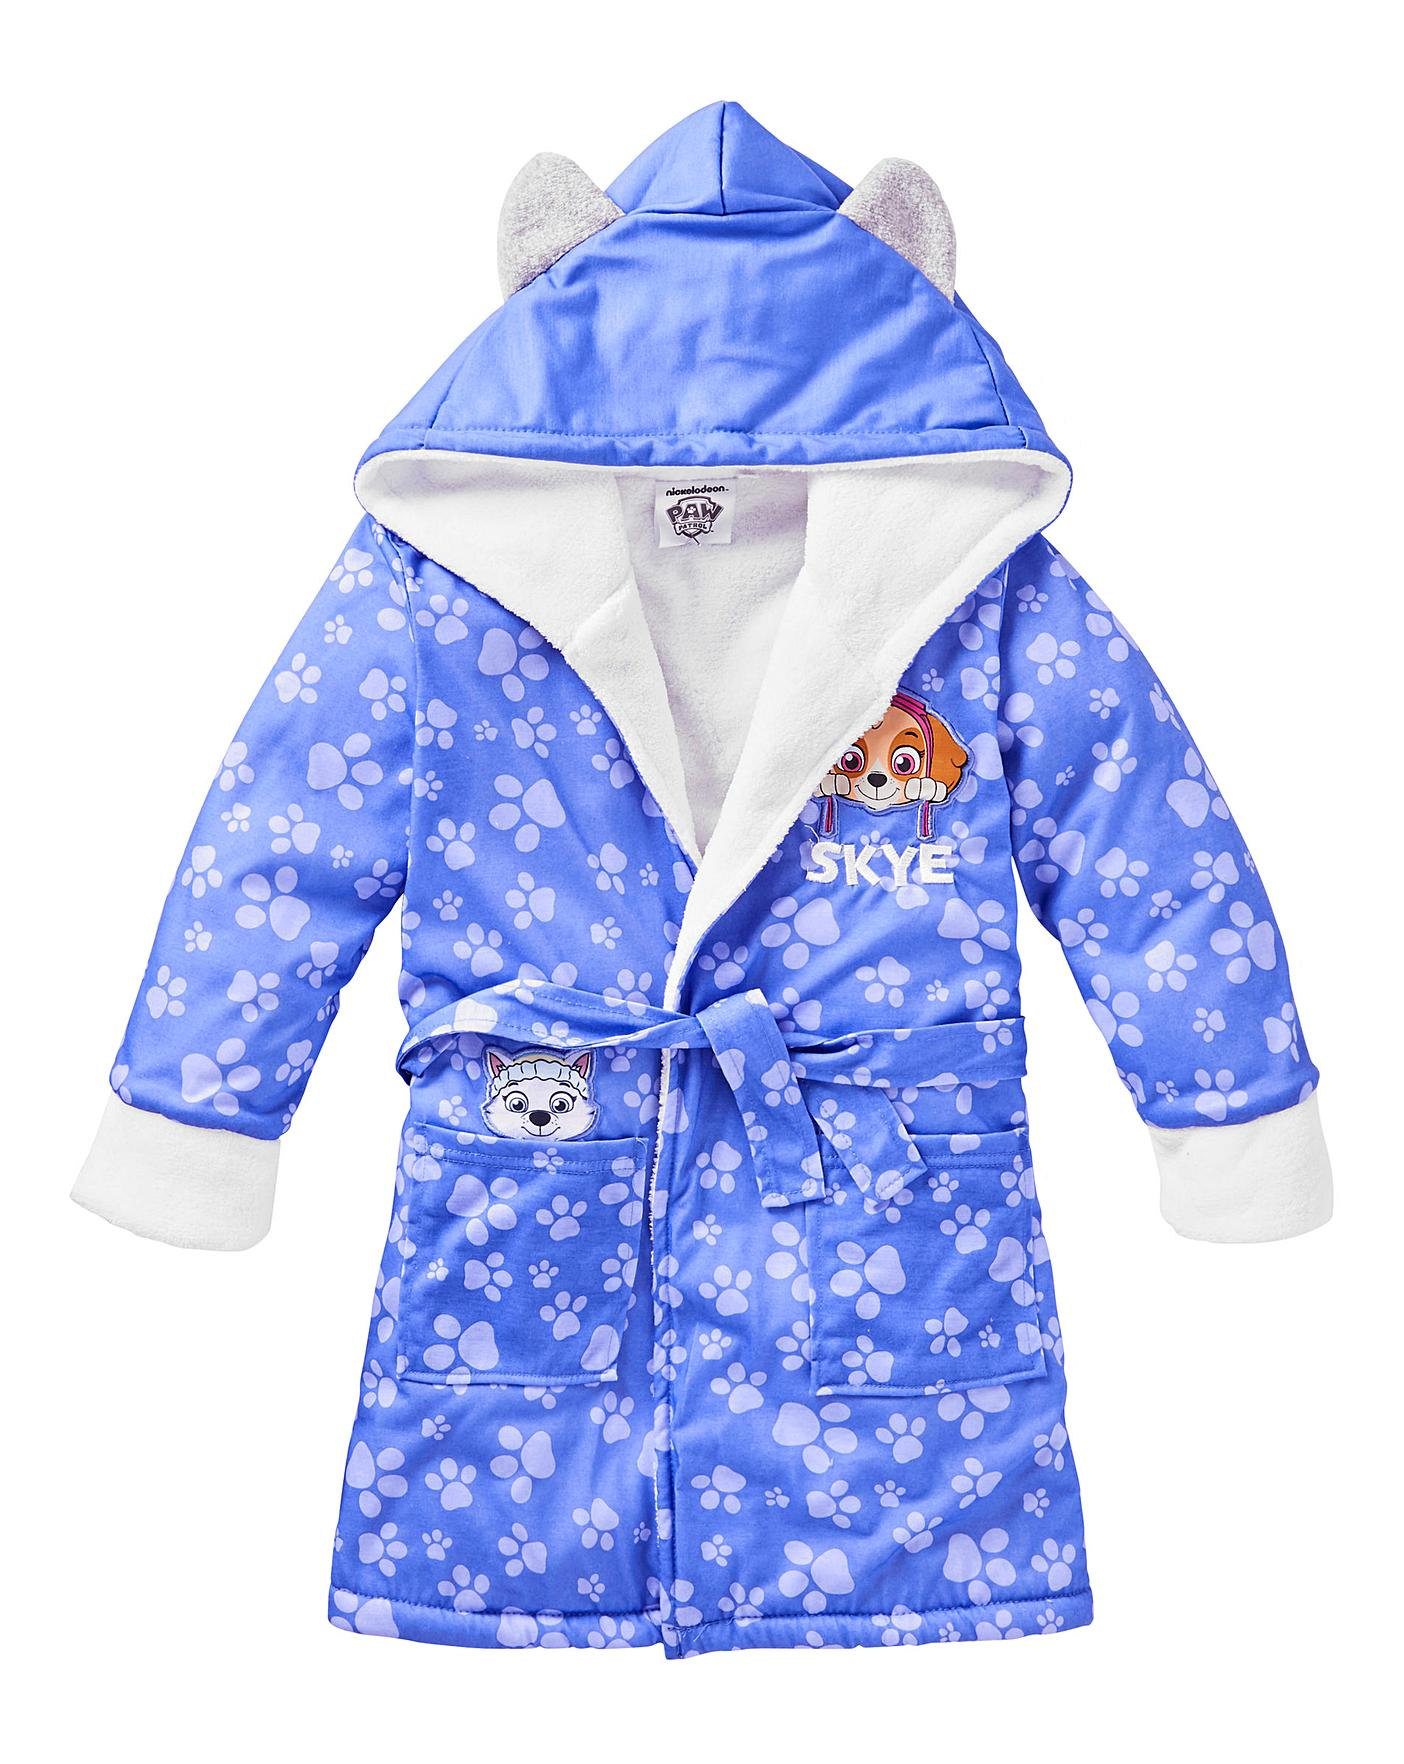 Paw Patrol Girls Dressing Gown